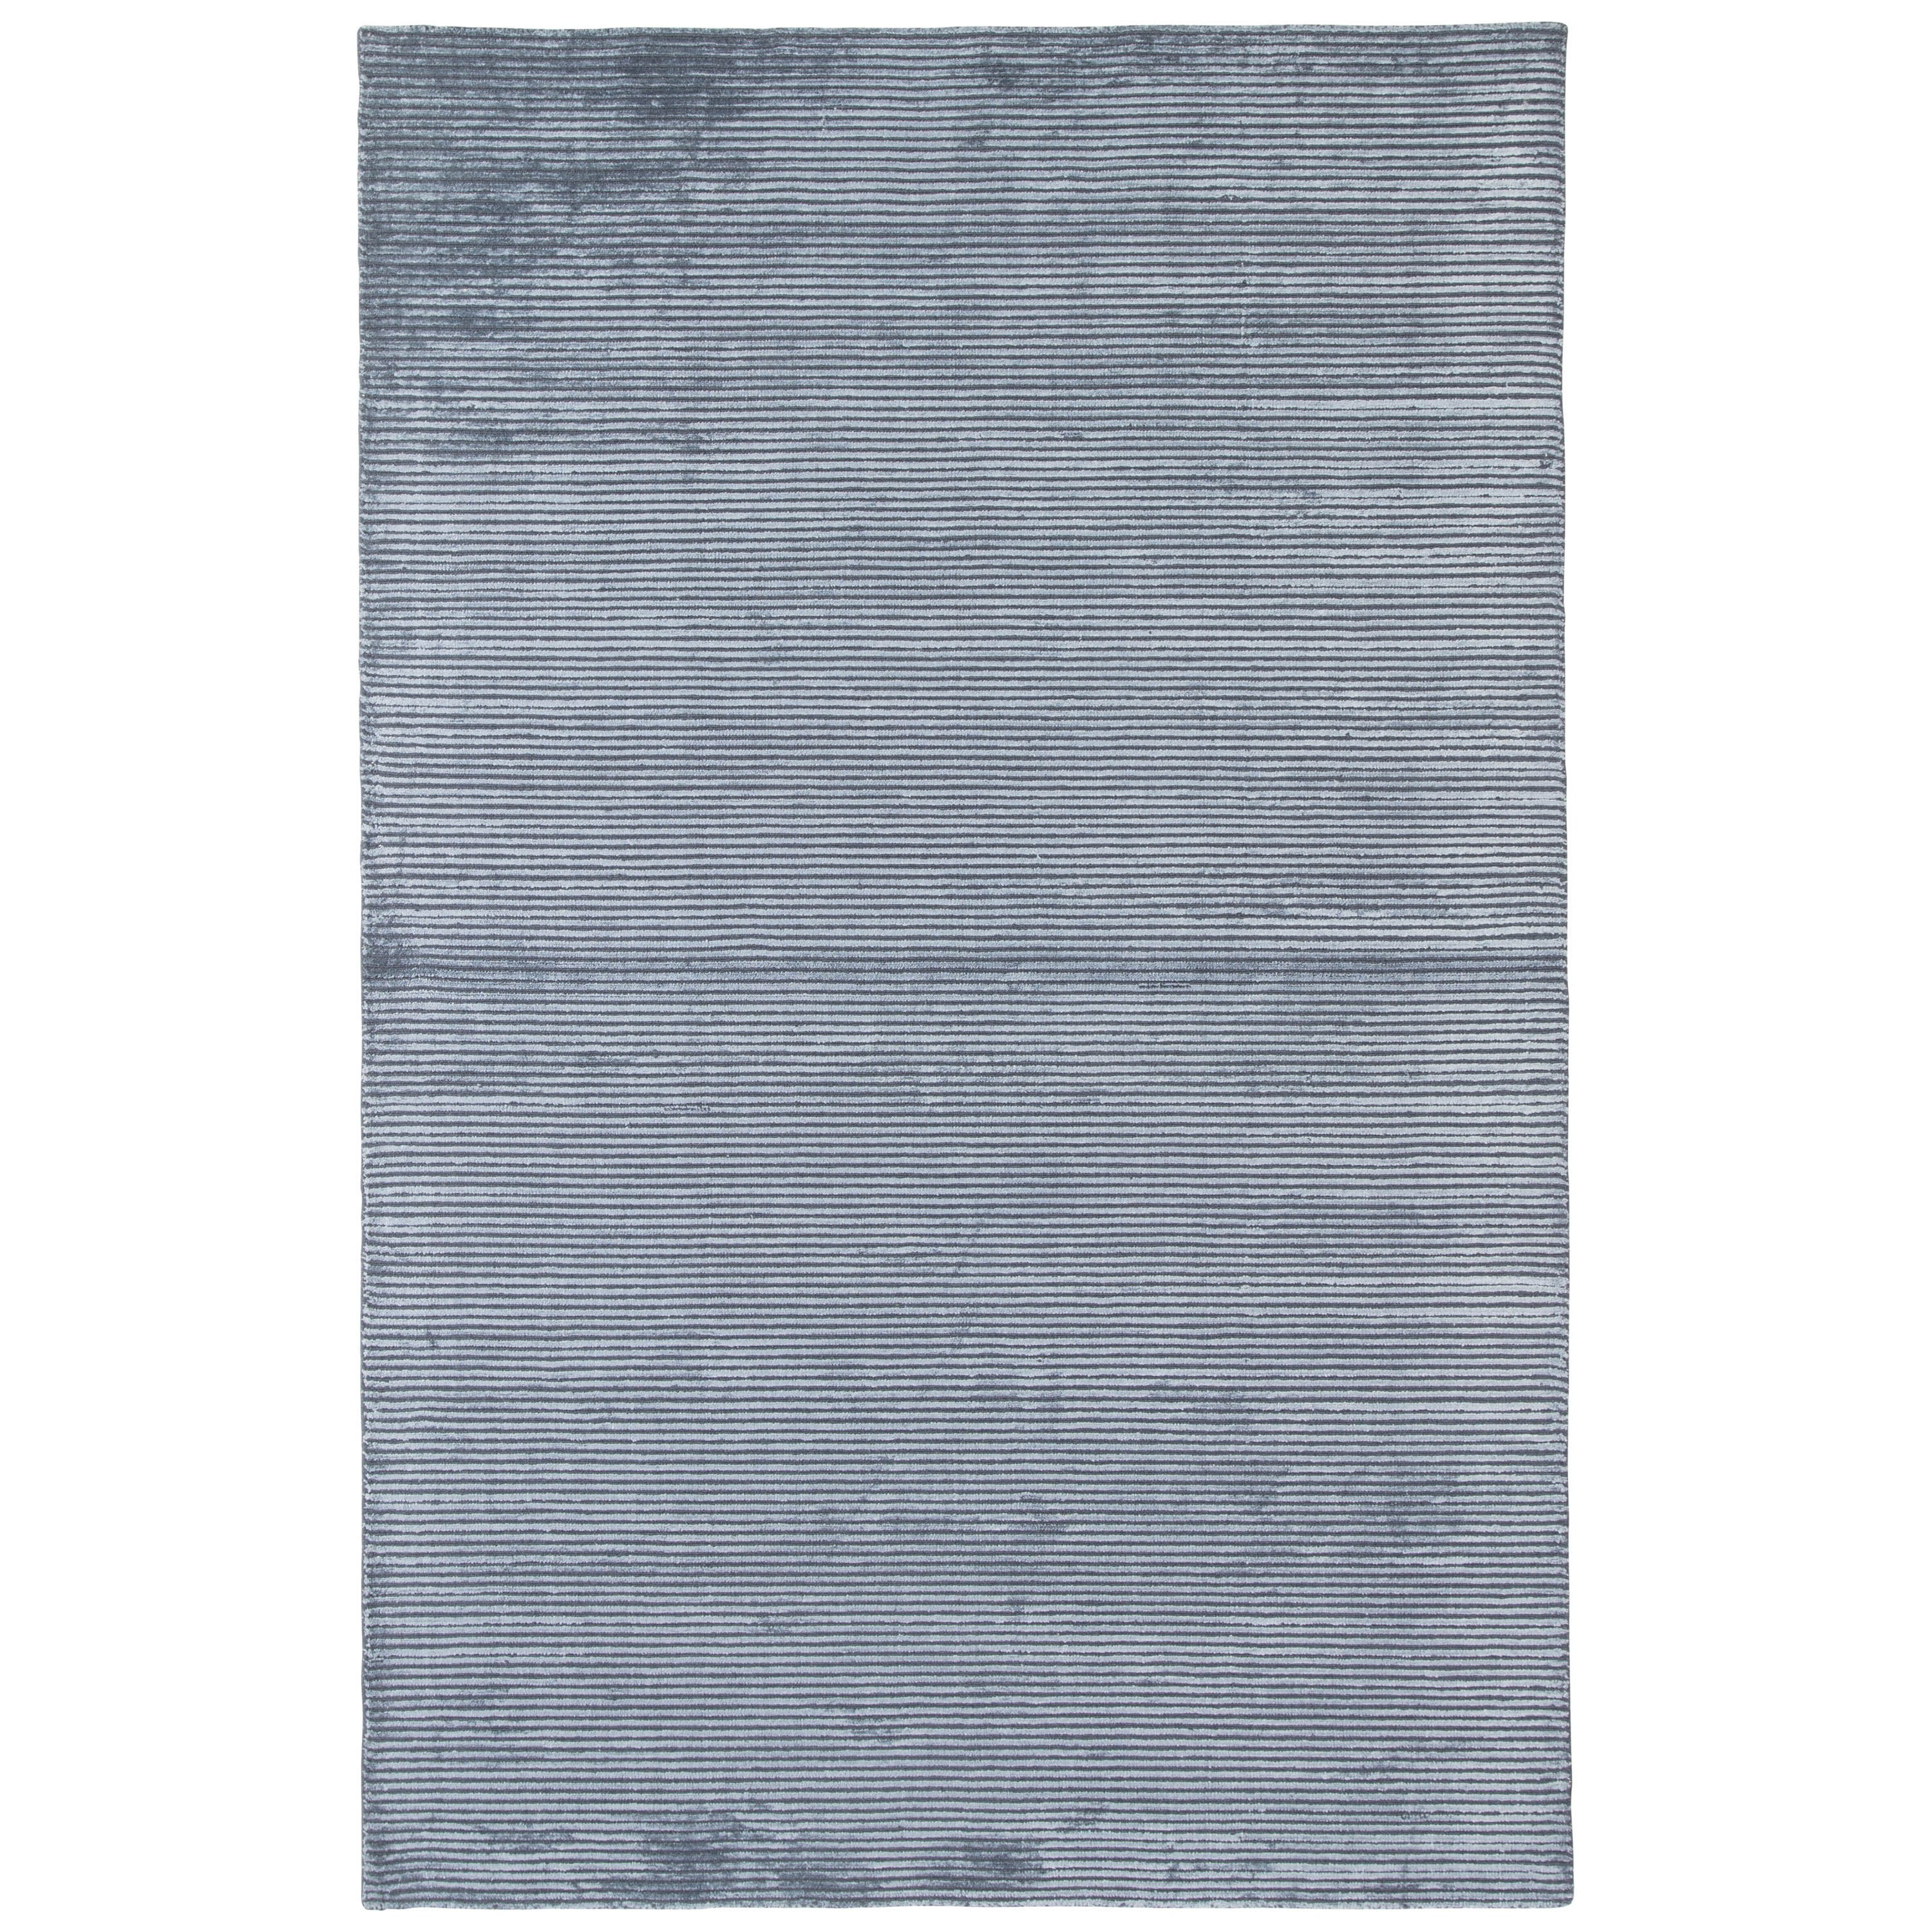 Rectangle Blue Solid Hand Loomed Blends Modern recommended for Kitchen, Bedroom, Bathroom, Dining Room, Office, Hallway, Living Room